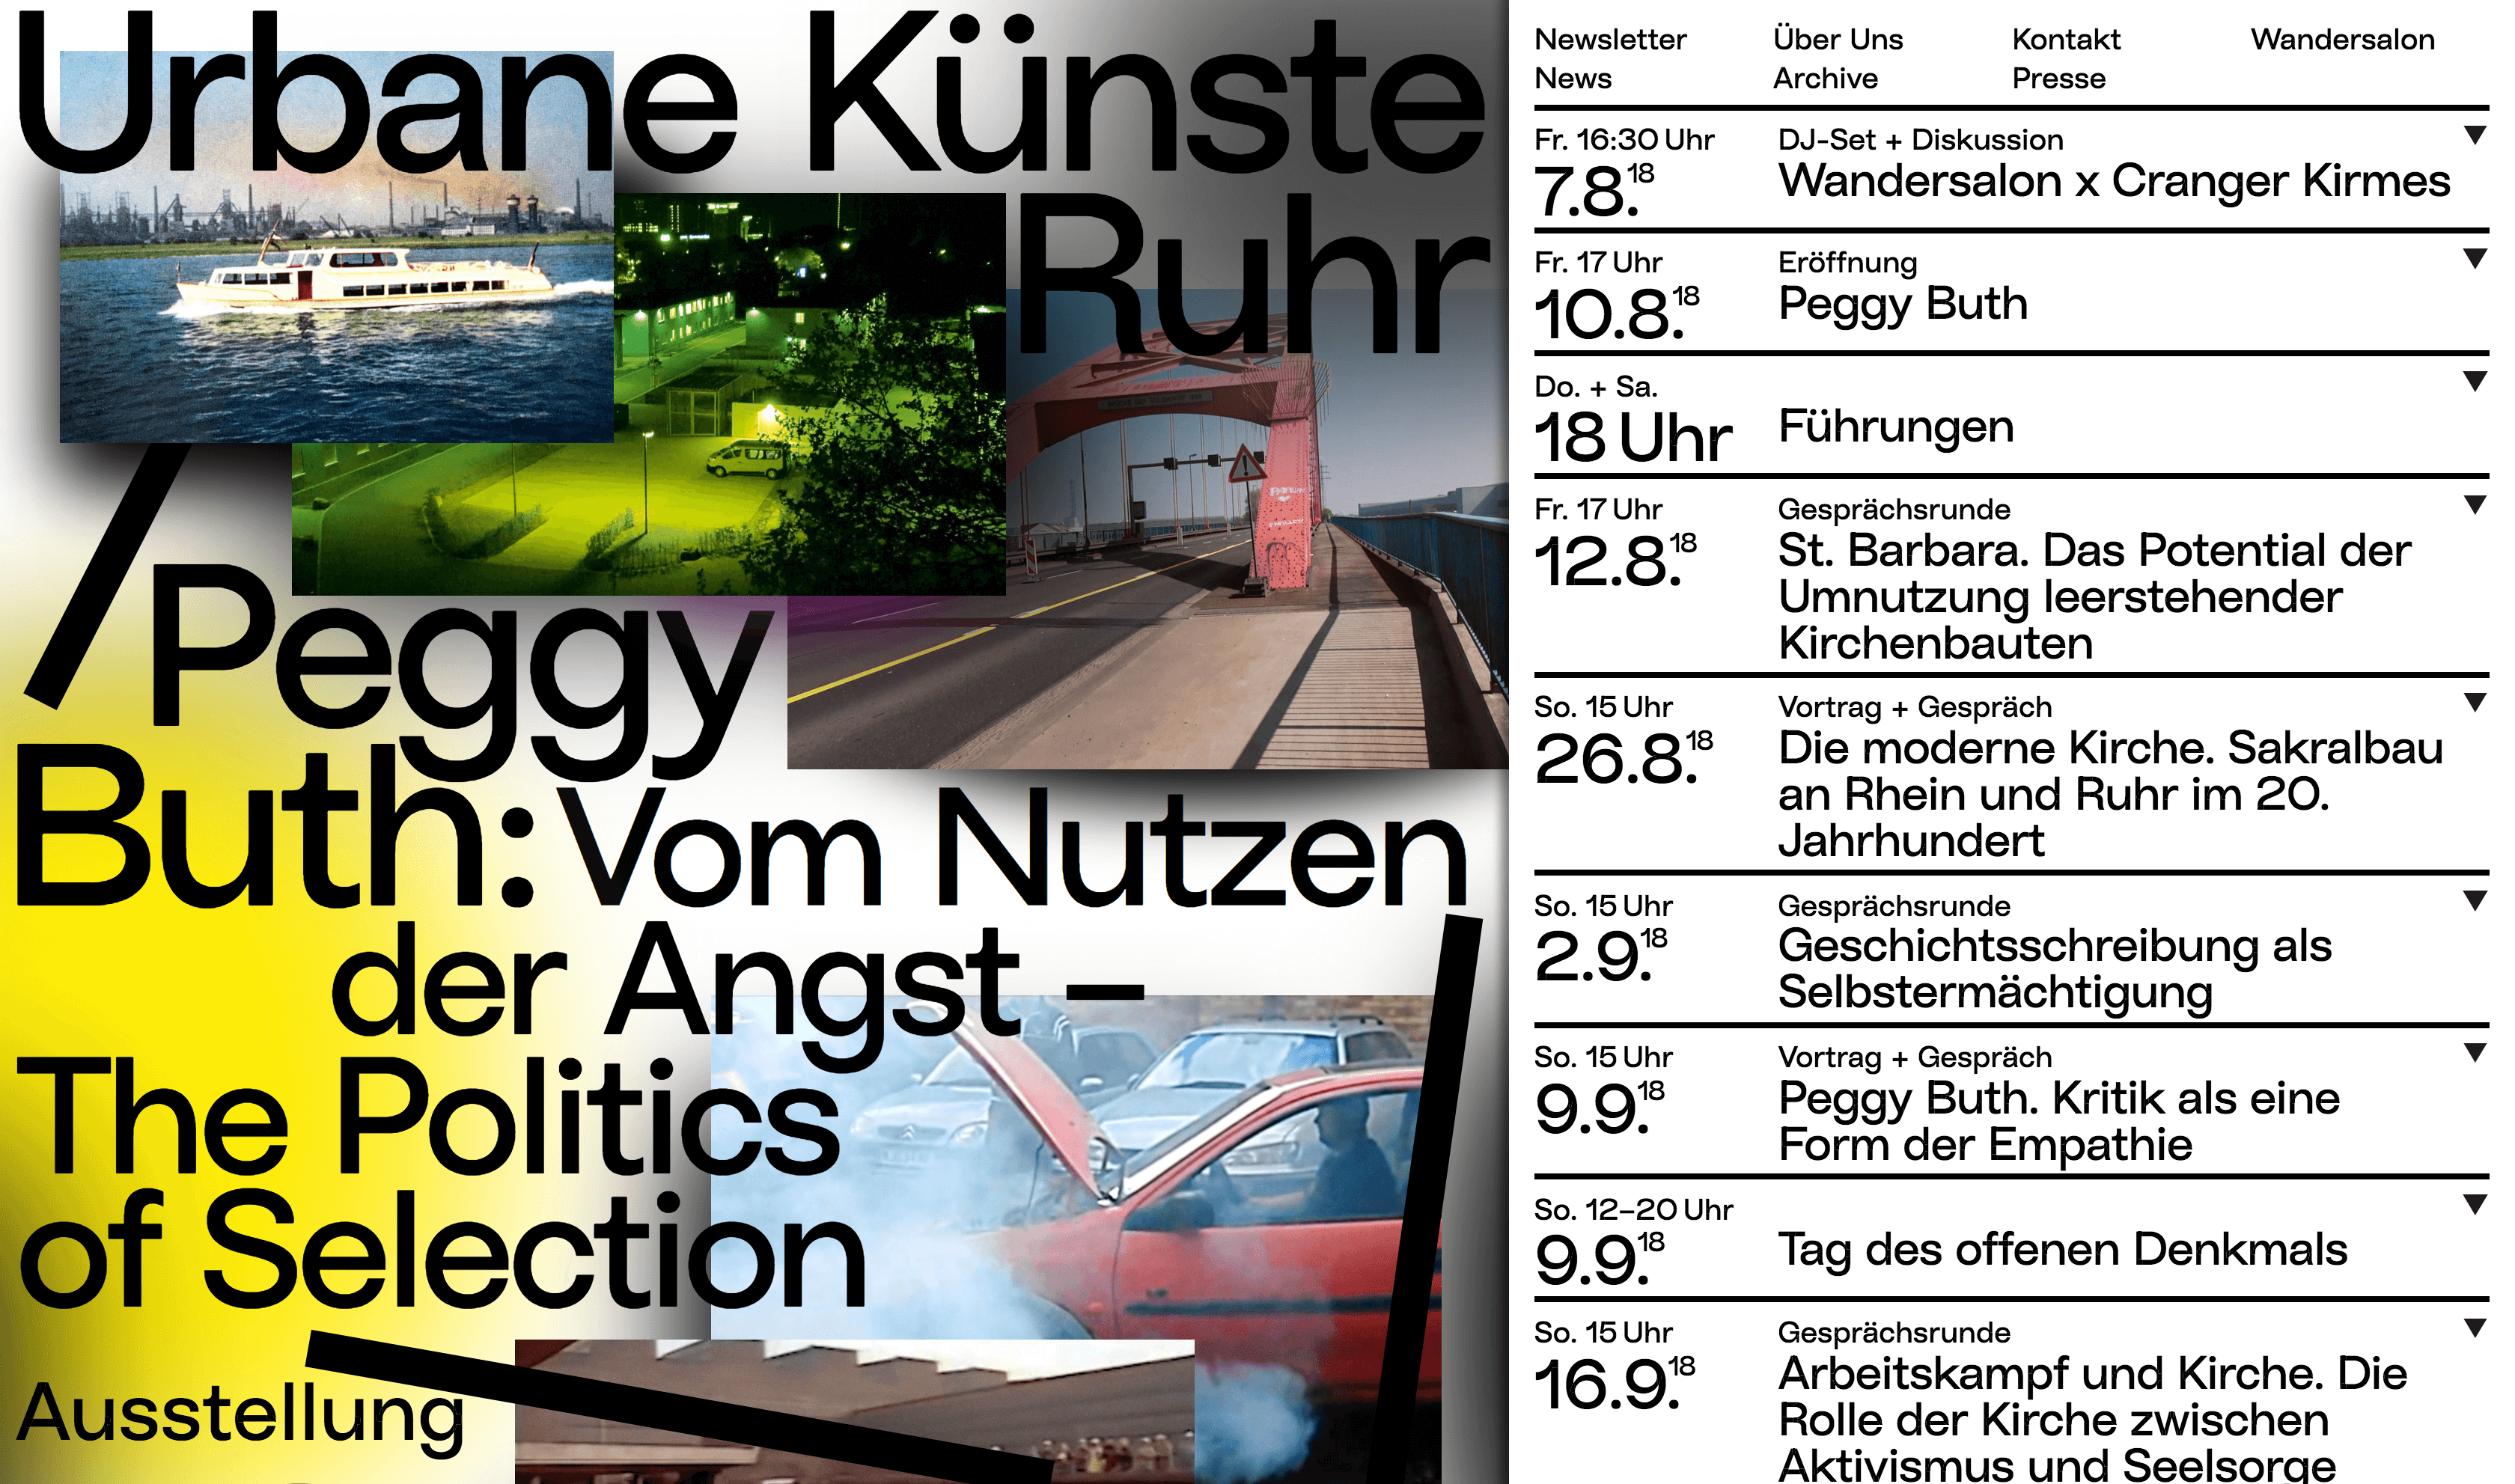 The Ubane Kuenste Rhur website.